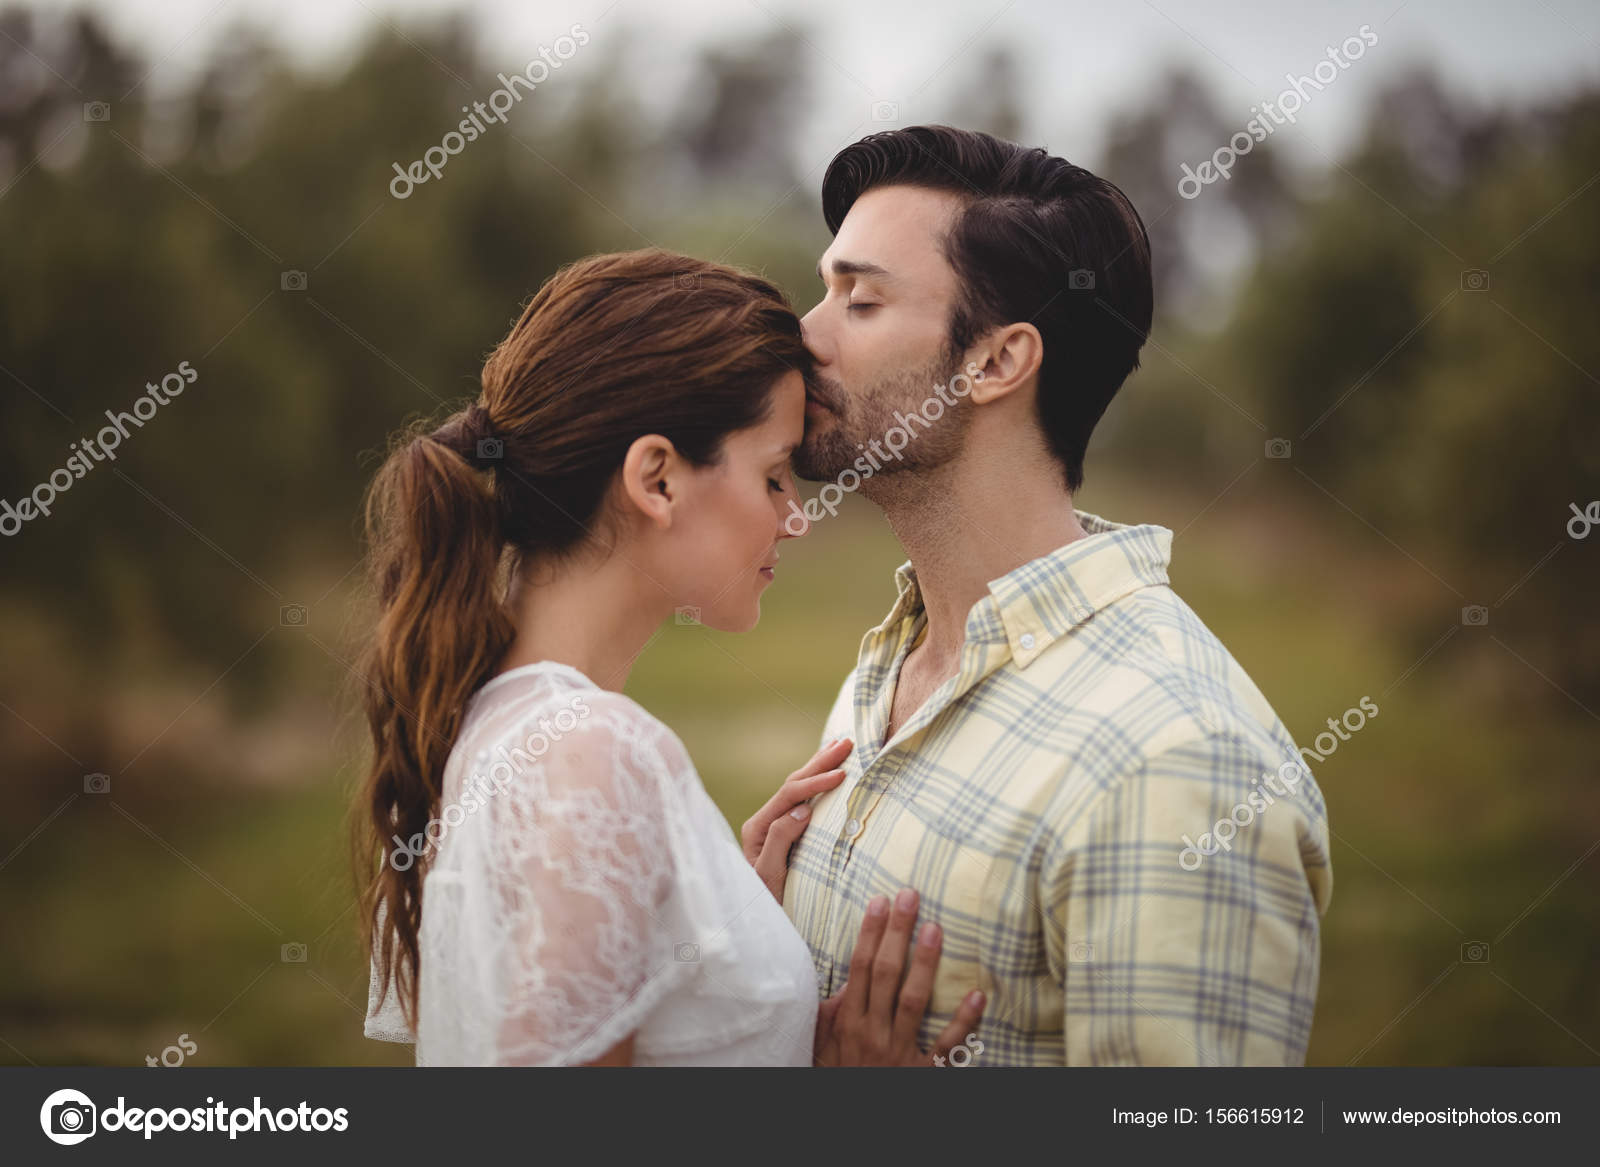 How soon to kiss girl when dating